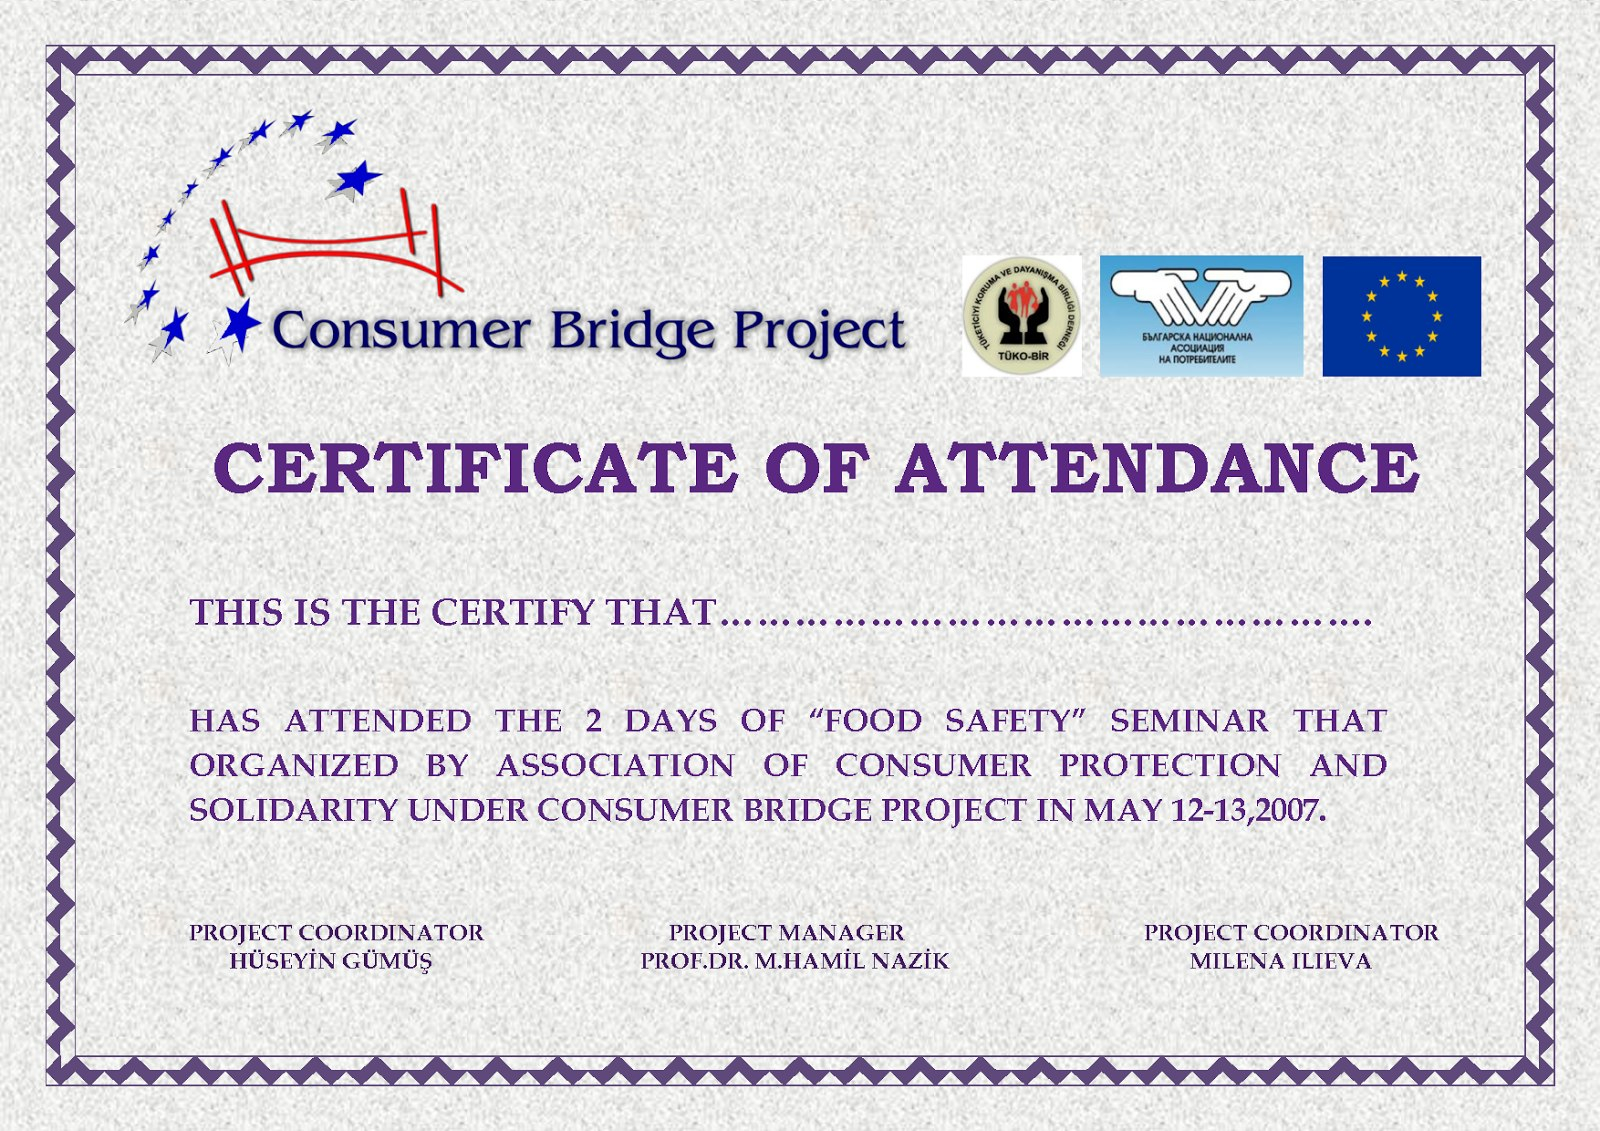 Perfect Attendance Certificate Templates  Free Download  Dtemplates In Free Certificate Templates For Word 2007